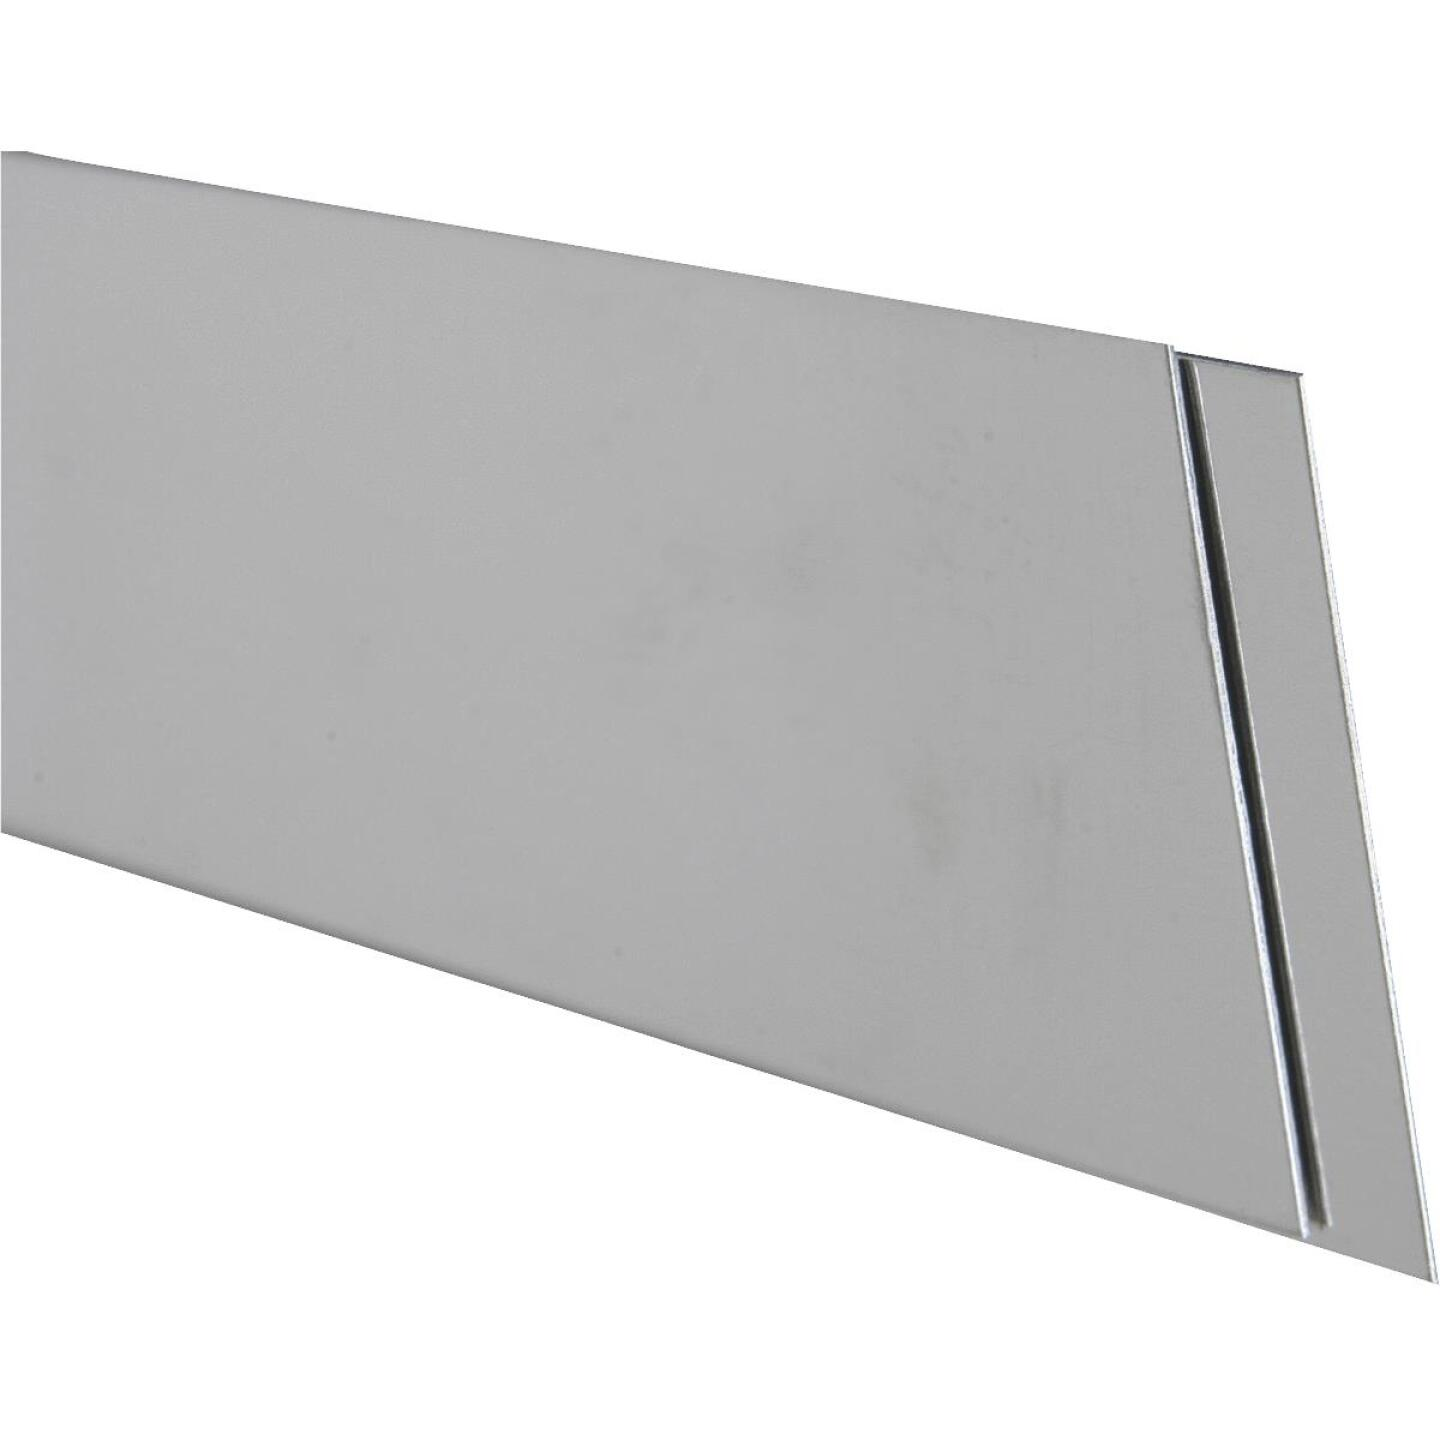 K&S Stainless Steel 1 In. x 12 In. Strip Stock Image 1